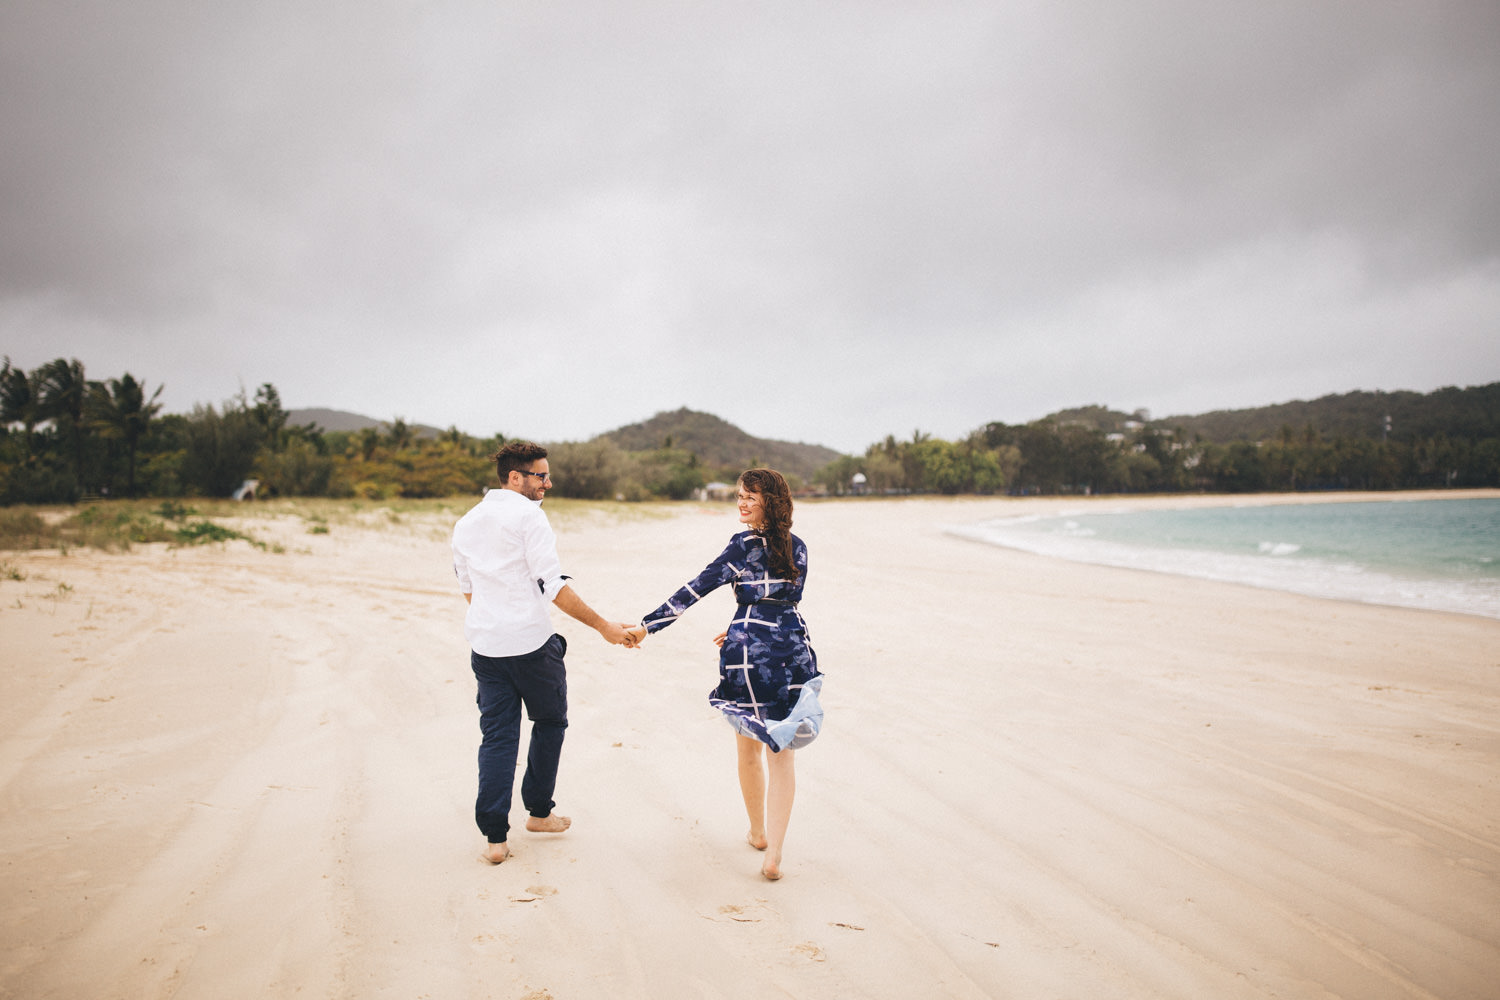 Rob-Kaity-Island-Engagement-Session-0041.jpg